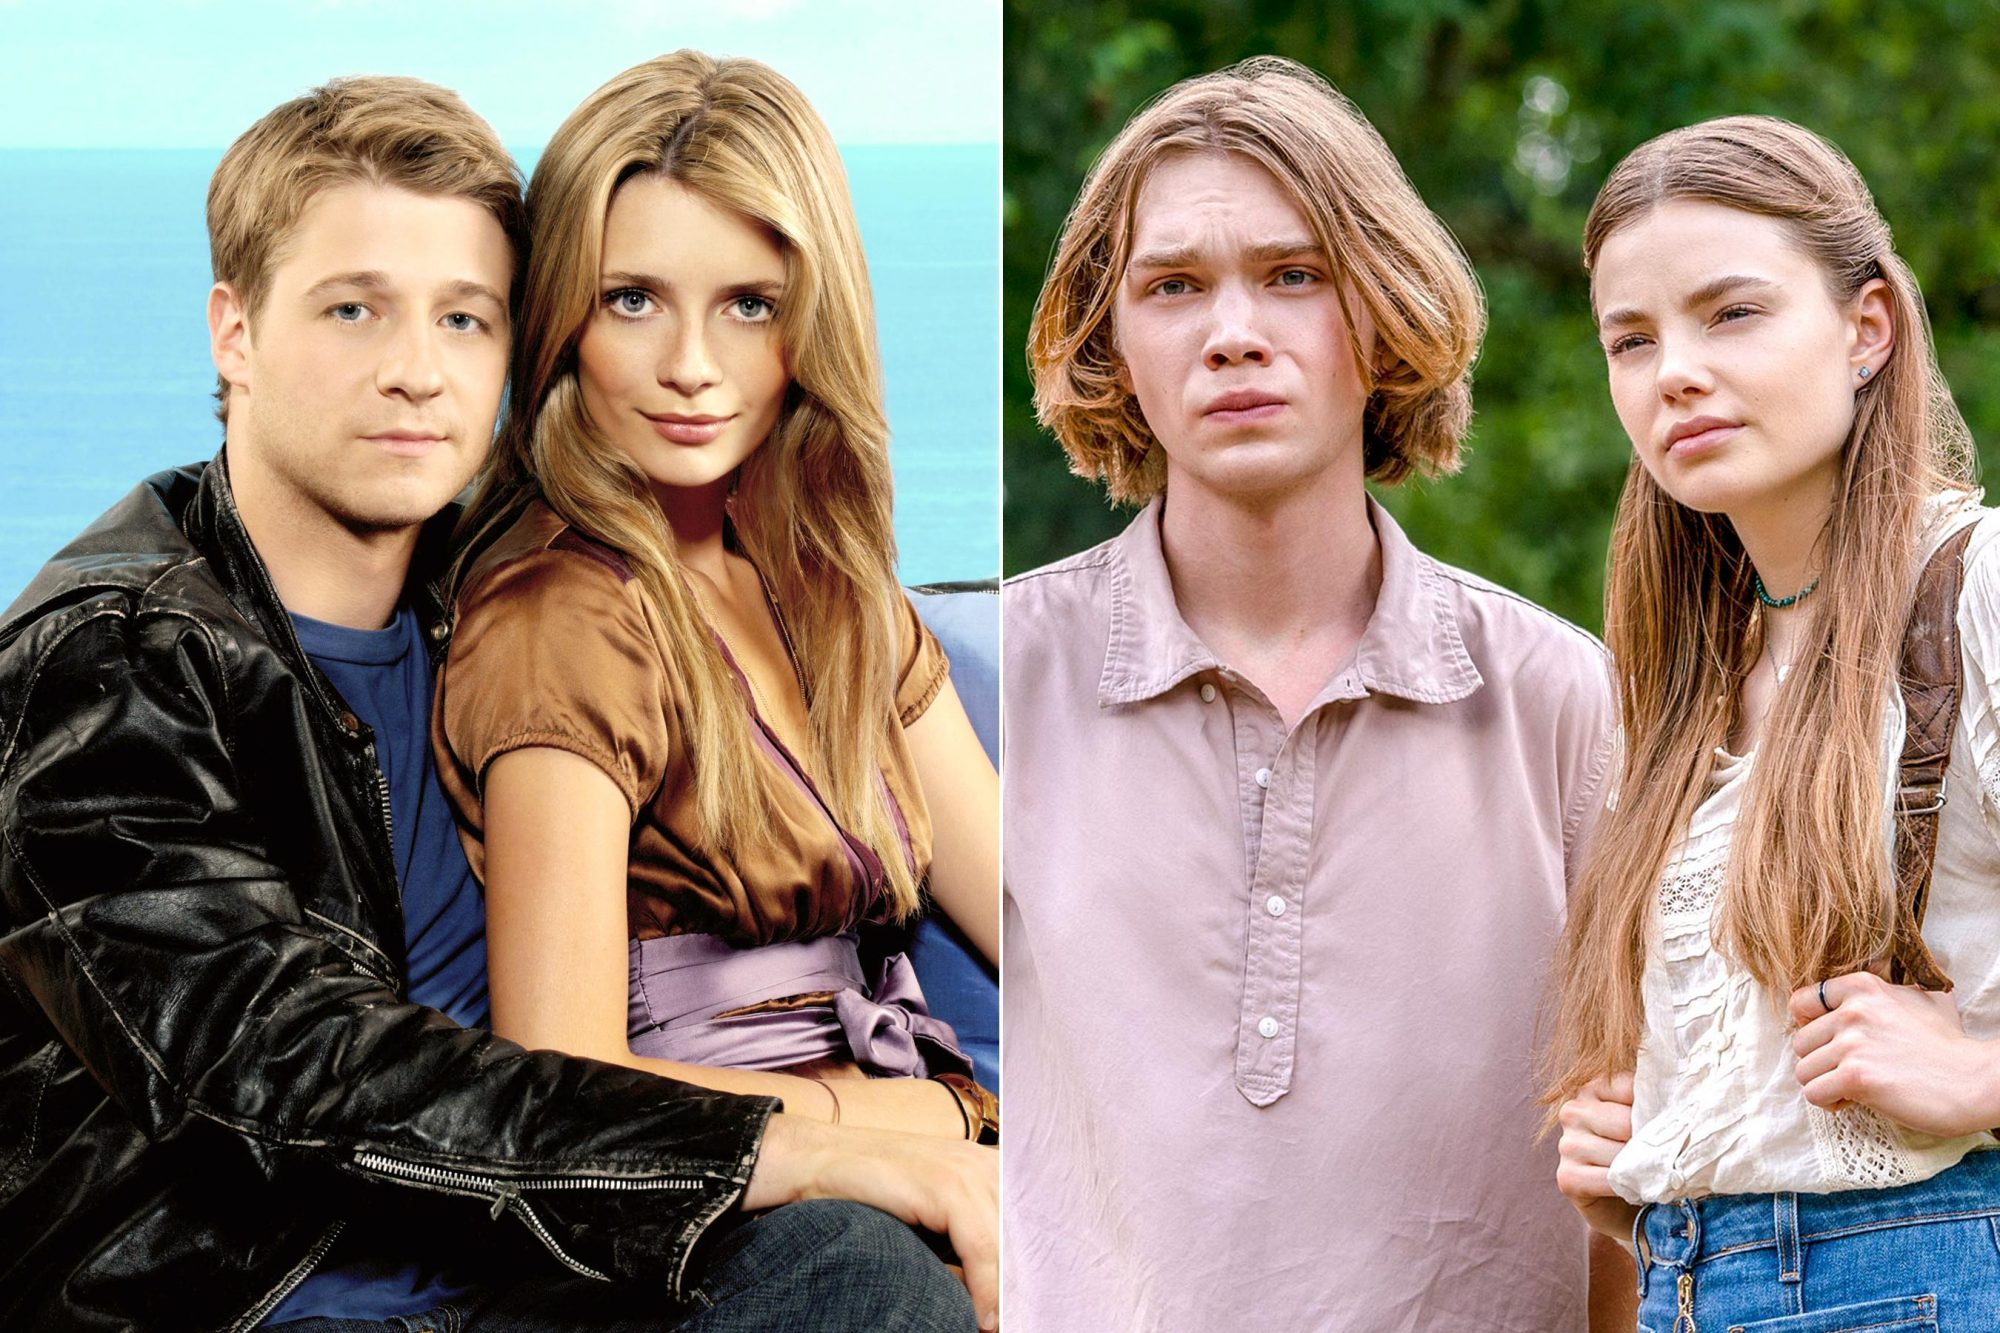 THE O.C., Benjamin McKenzie, Mischa Barton, (Season 3), 2003-2007. photo: © WB / Courtesy: Everett Collection Looking For Alaska -- Episode -- Looking For Alaska is an 8-episode limited series based on the John Green novel of the same name. It centers around teenager Miles ìPudgeî Halter (Charlie Plummer), as he enrolls in boarding school to try to gain a deeper perspective on life. He falls in love with Alaska Young (Kristine Froseth), and finds a group of loyal friends. But after an unexpected tragedy, Miles and his close friends attempt to make sense of what theyíve been through. , shown. (Photo by: Alfonso Bresciani/Hulu)